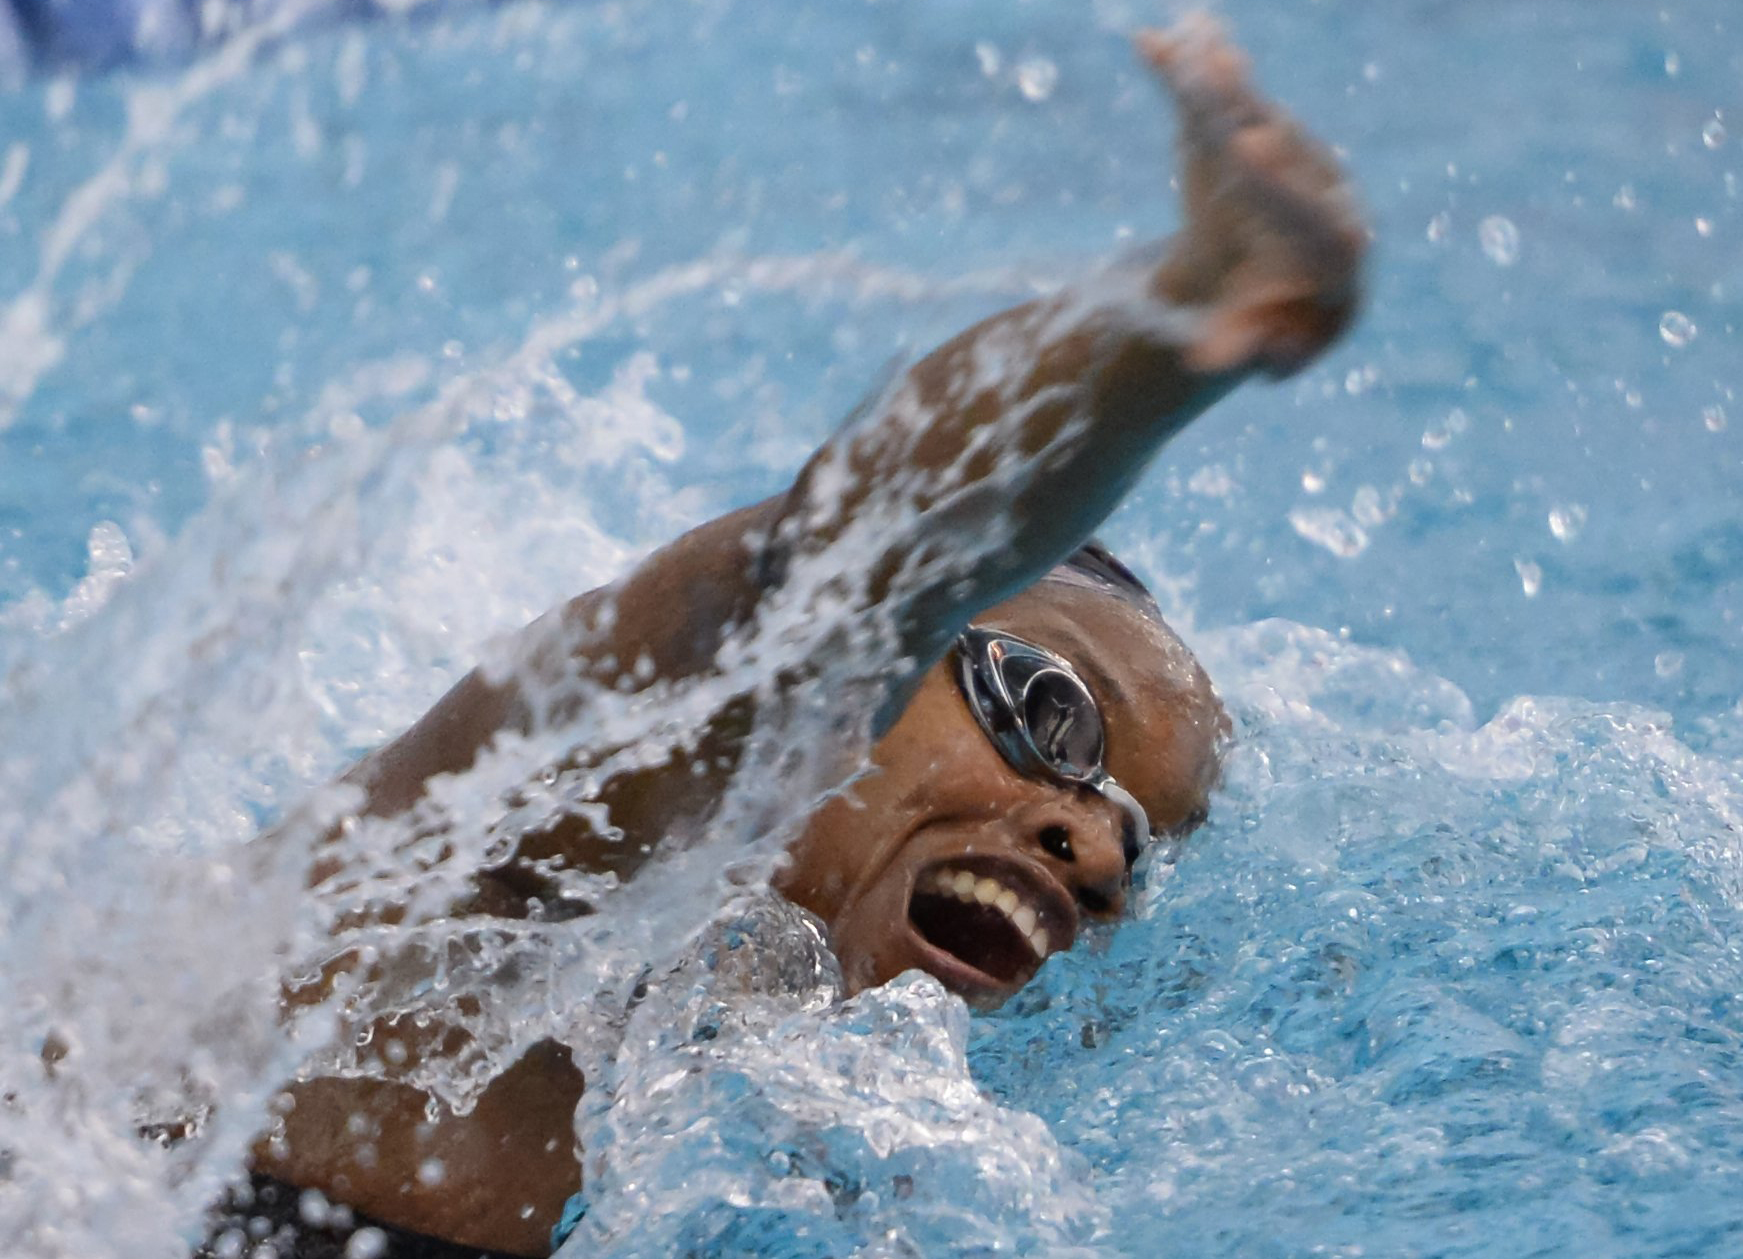 Misha Neal of Durham School of the Arts swims in the Women's 100 Yard Freestyle race during the NCHSAA 1A/2A State Swimming Finals in Cary, N.C. on Friday, February 13, 2015.